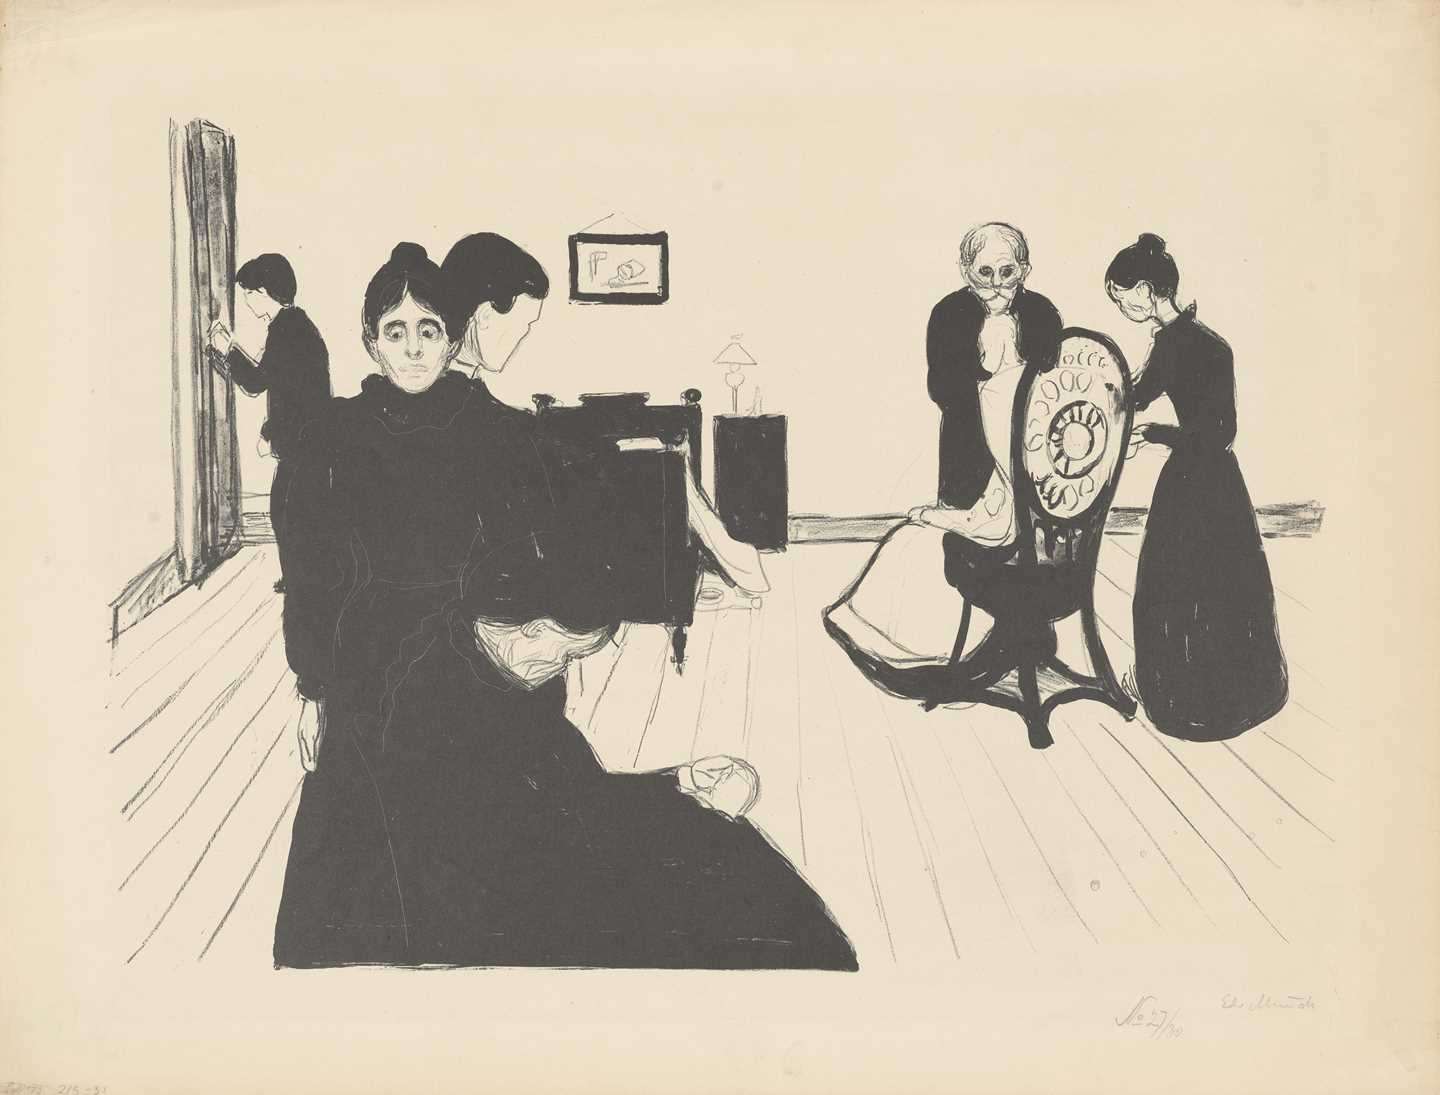 Edvard Munch: Death in the Sickroom. Lithograph, 1896. Photo © Munchmuseet